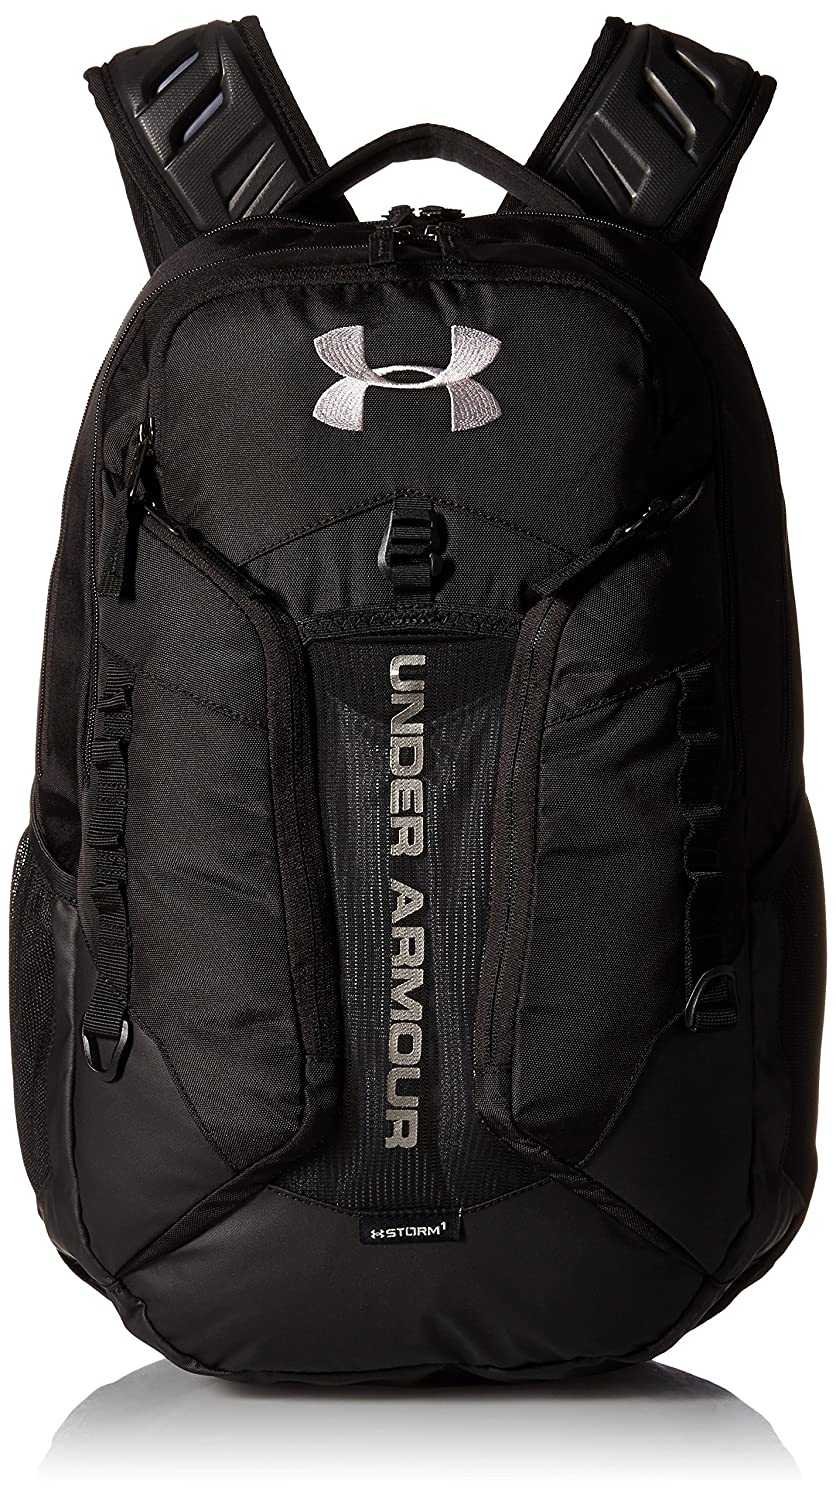 3afed1505999 Under Armour Unisex s Contender Backpack